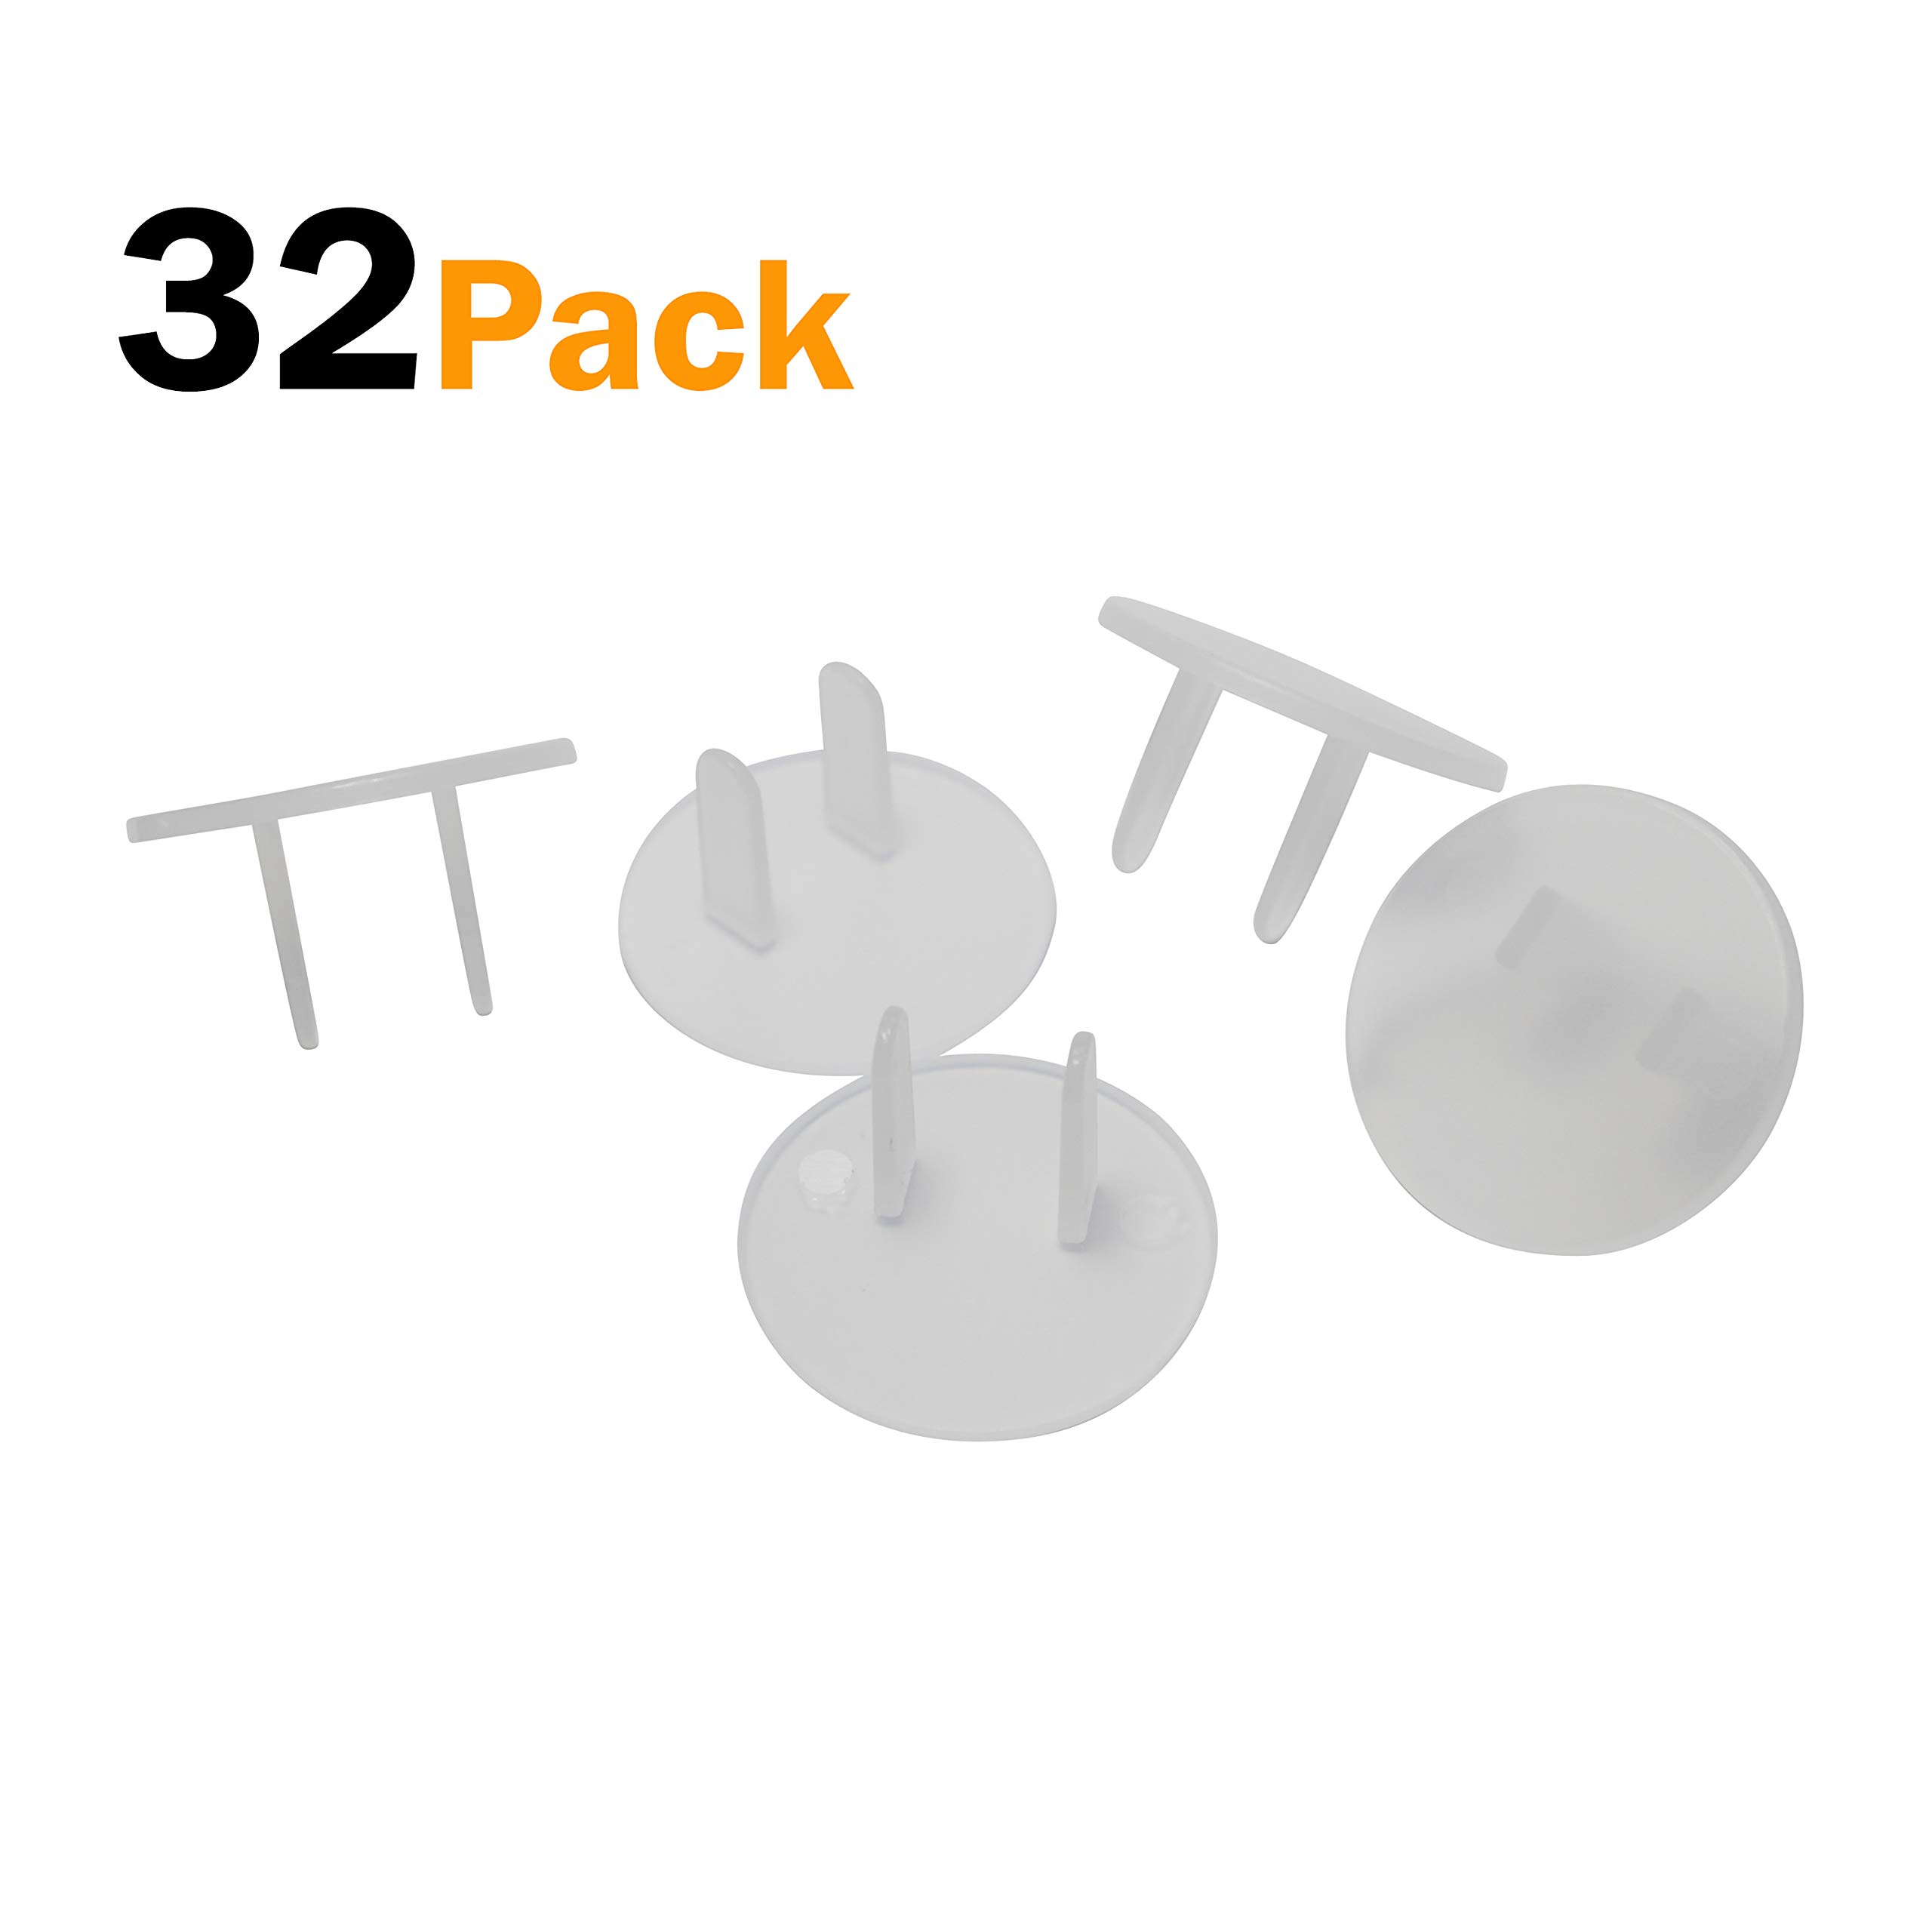 Clear Outlet Plug Covers (32 Pack) Child Proof Electrical Safety Outlet Covers - sMailez